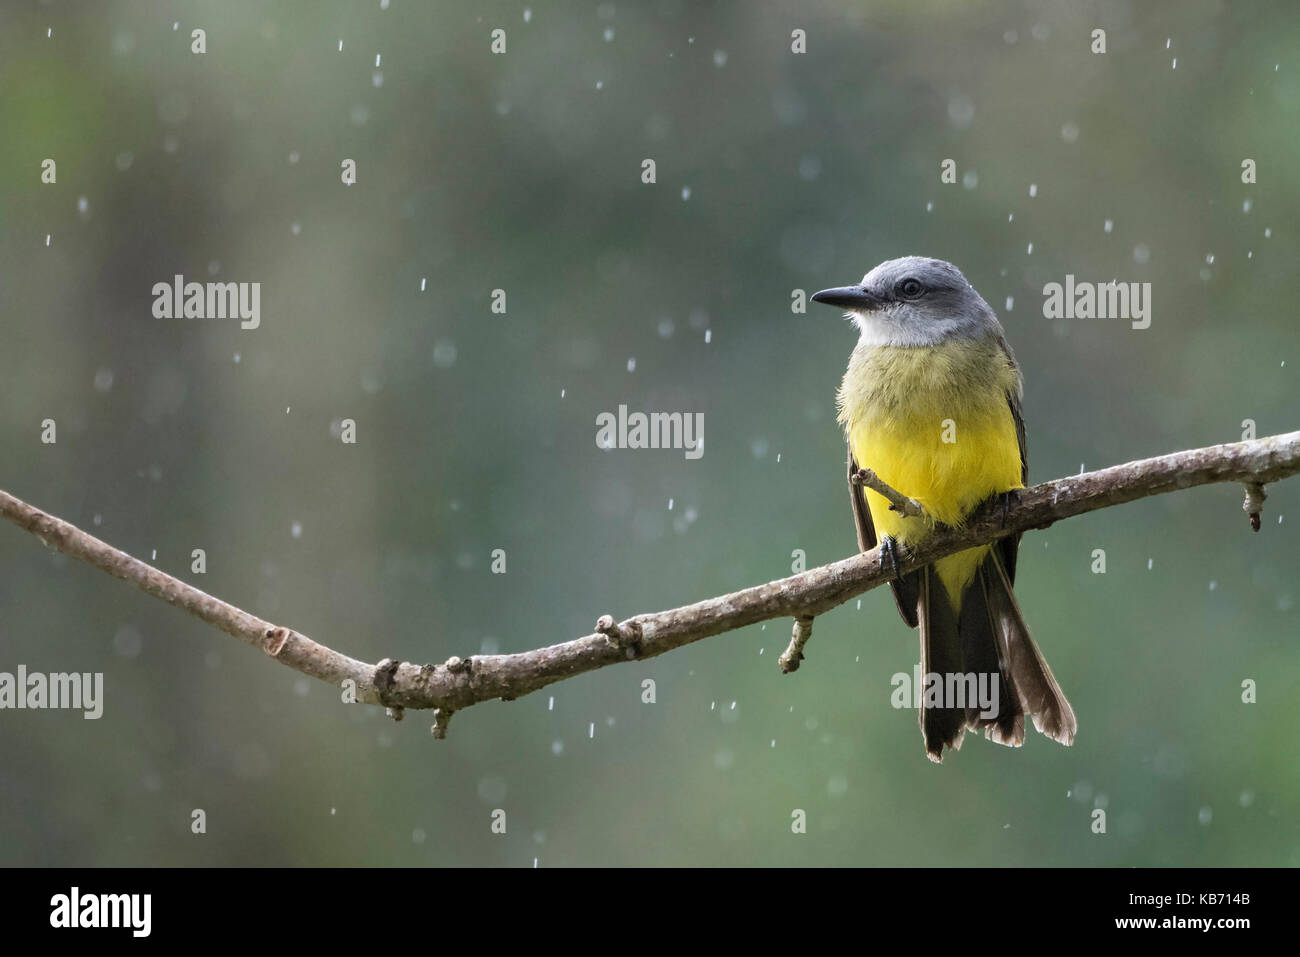 Tropical Kingbird (Tyrannus melancholicus) on outlook in heavy rainfall, Costa Rica, Alajuela, La Fortuna - Stock Image